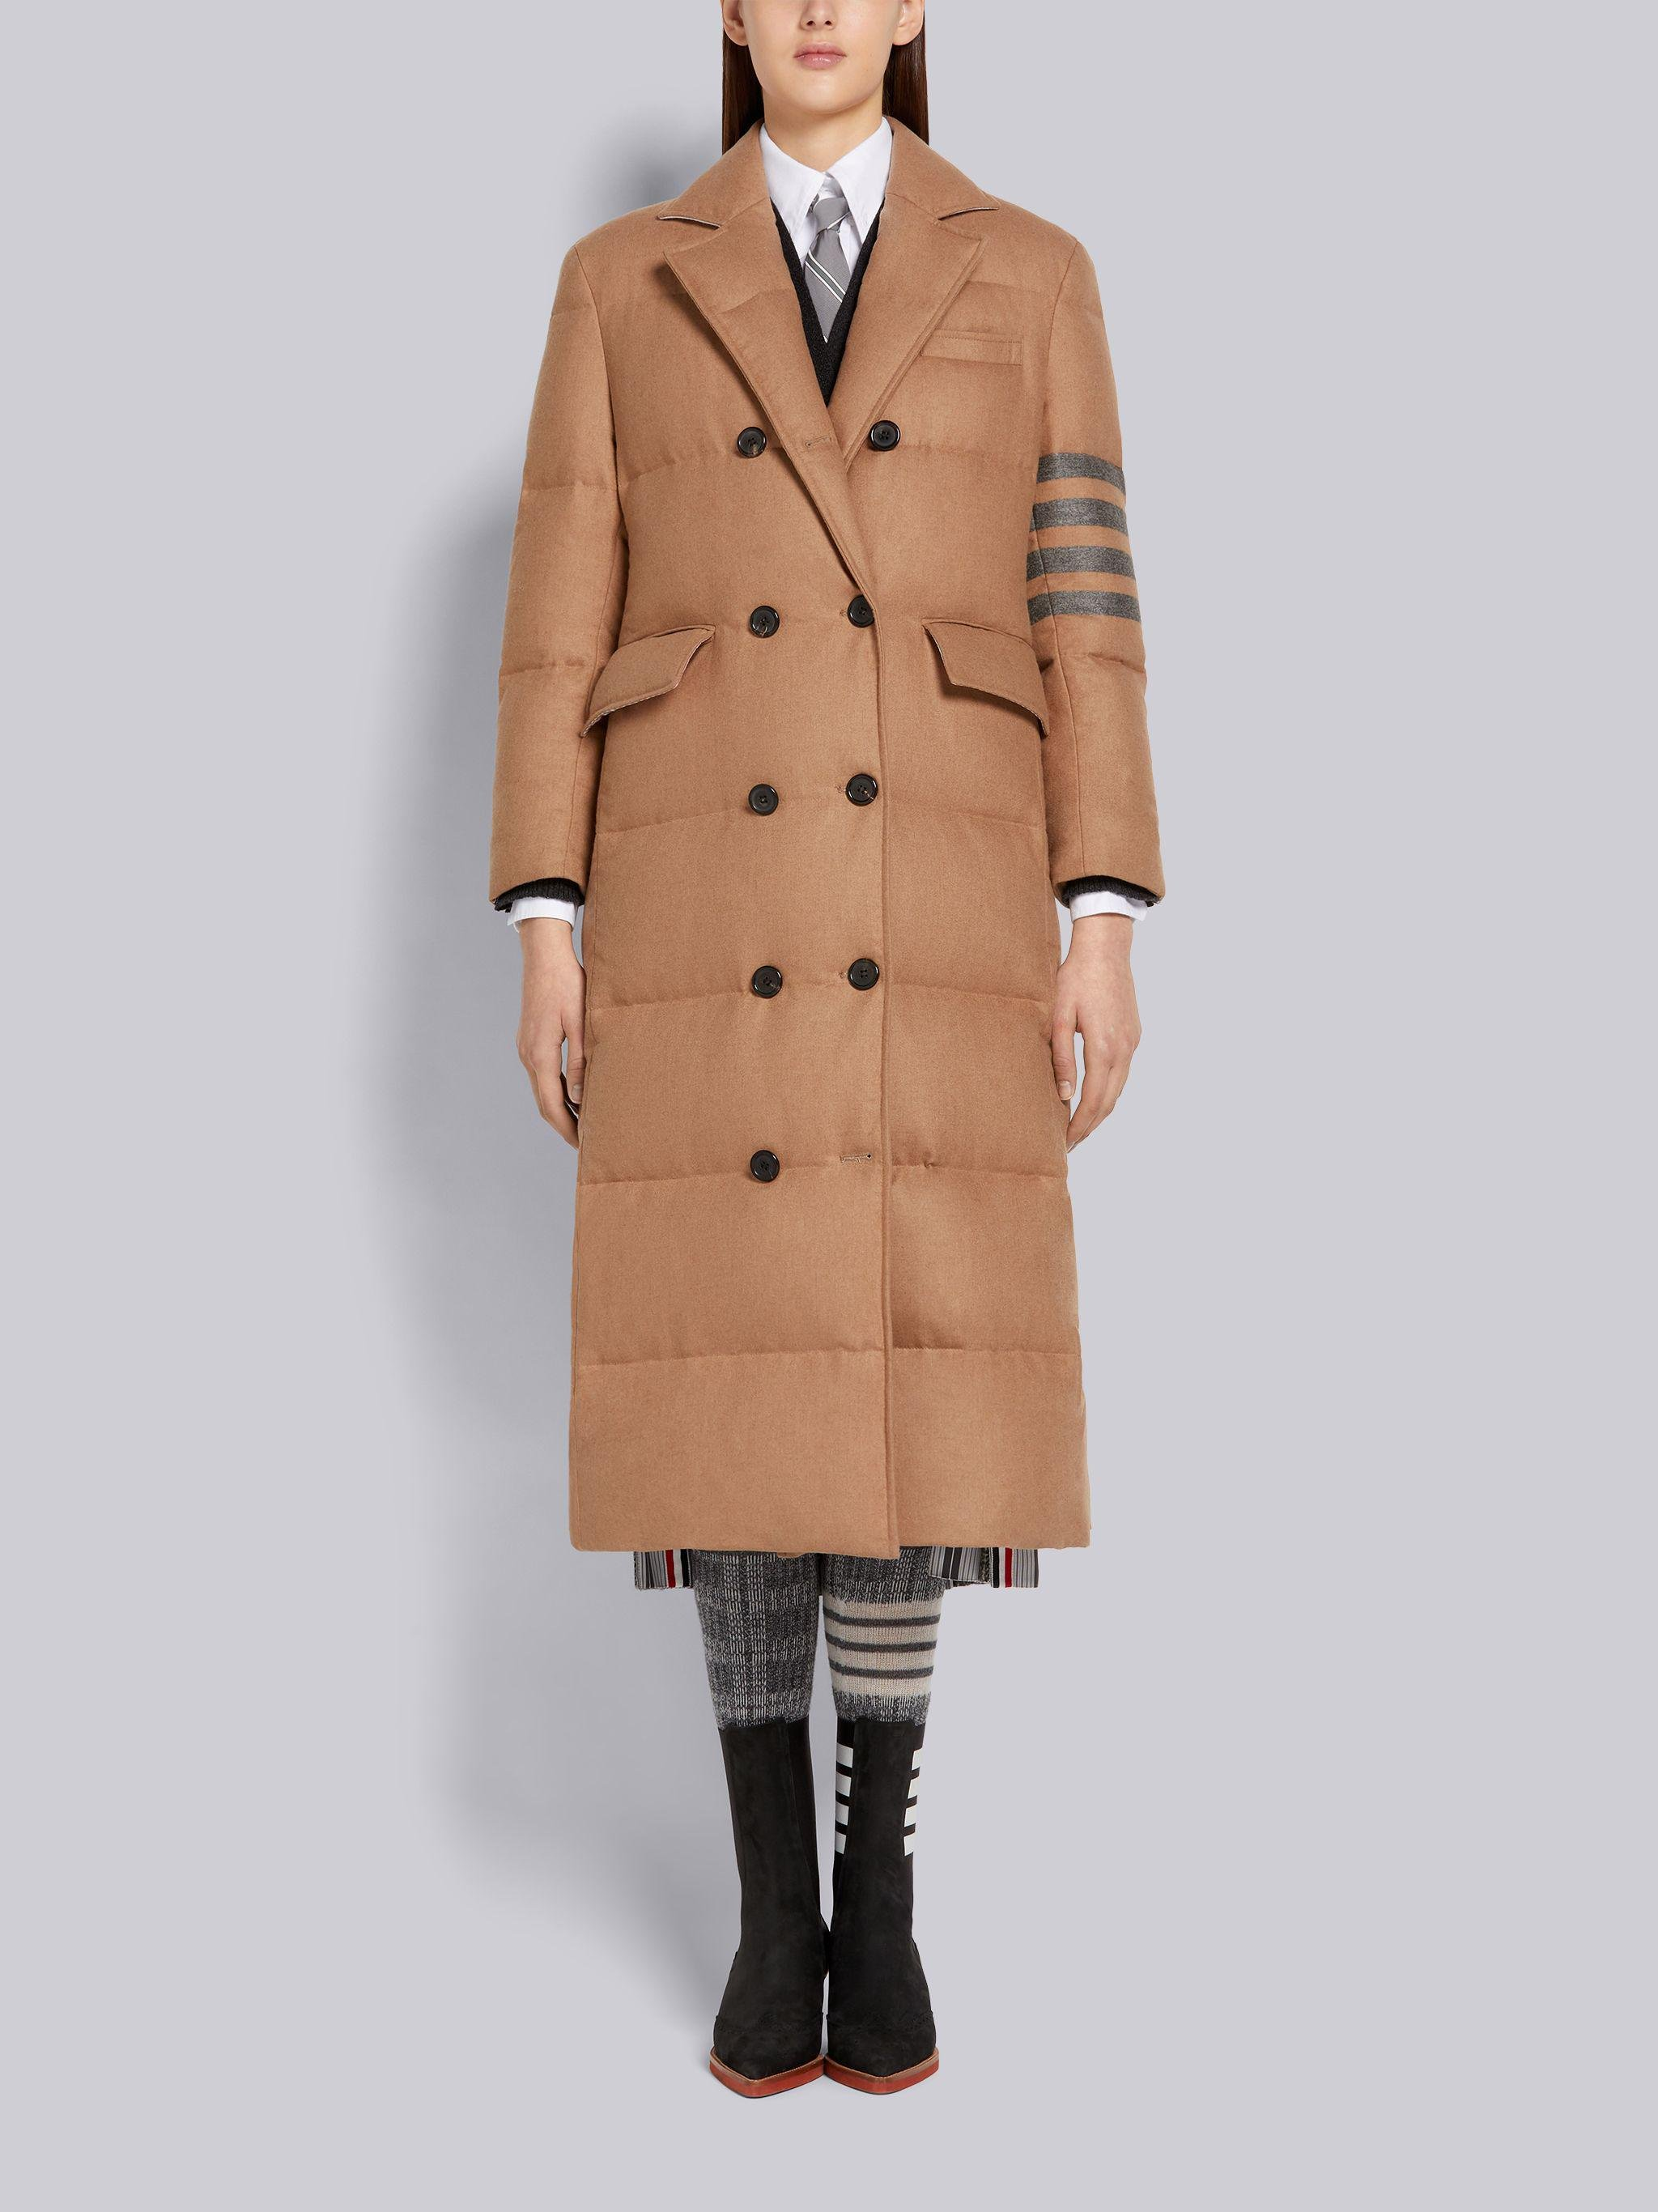 Down-Filled Jacket Weight Camel Hair 4-Bar Wide Lapel Trouser Length Double Breasted Overcoat